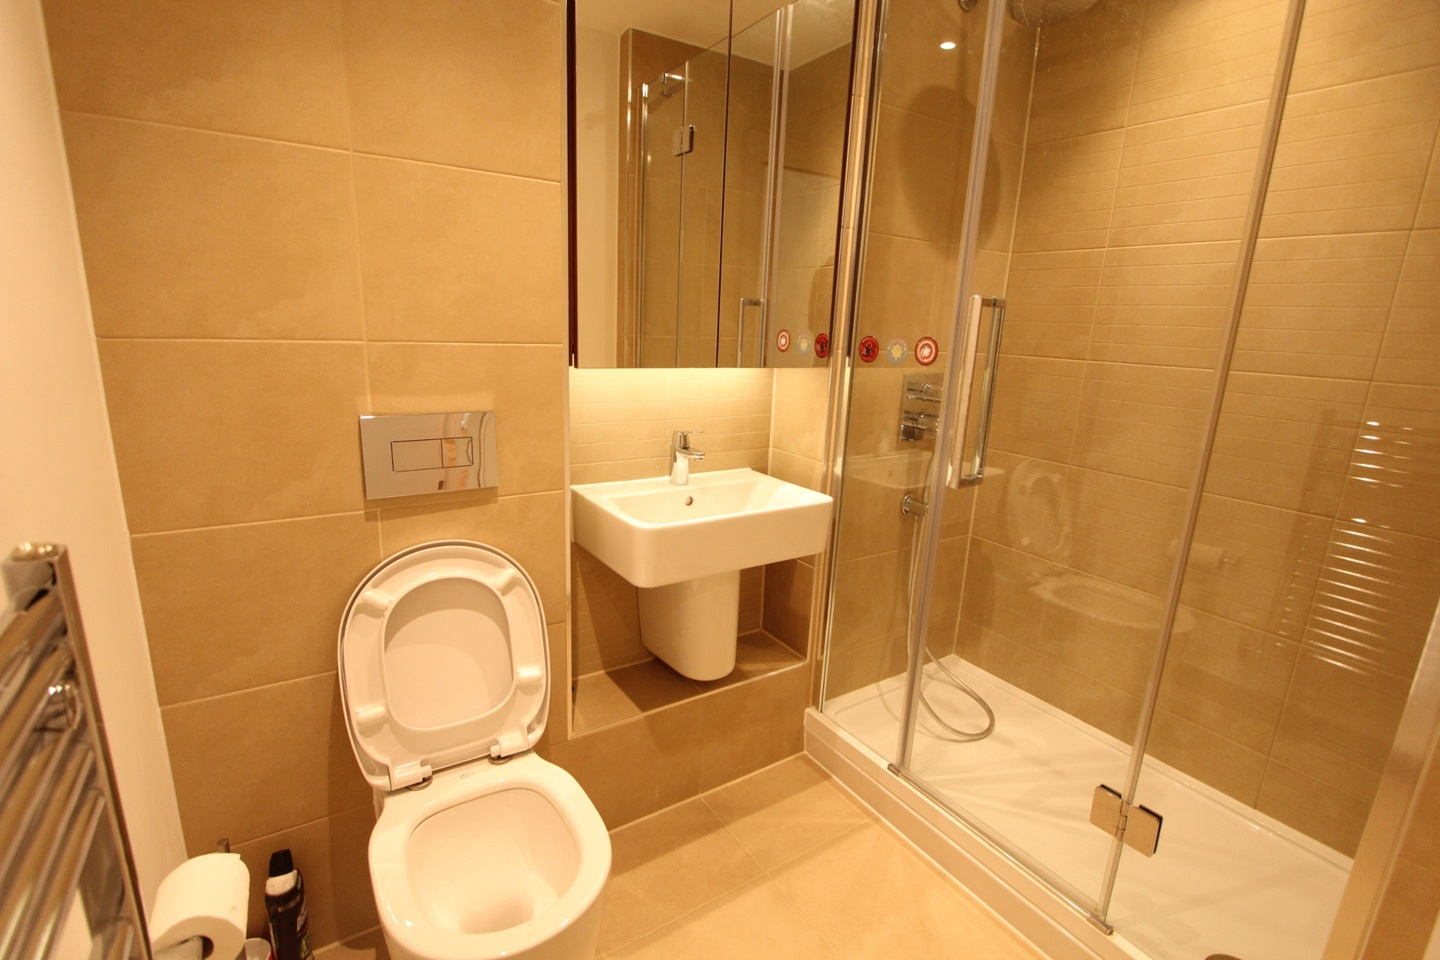 London - 2 Bed Flat, Fairbourne Road, SW4 - To Rent Now ...